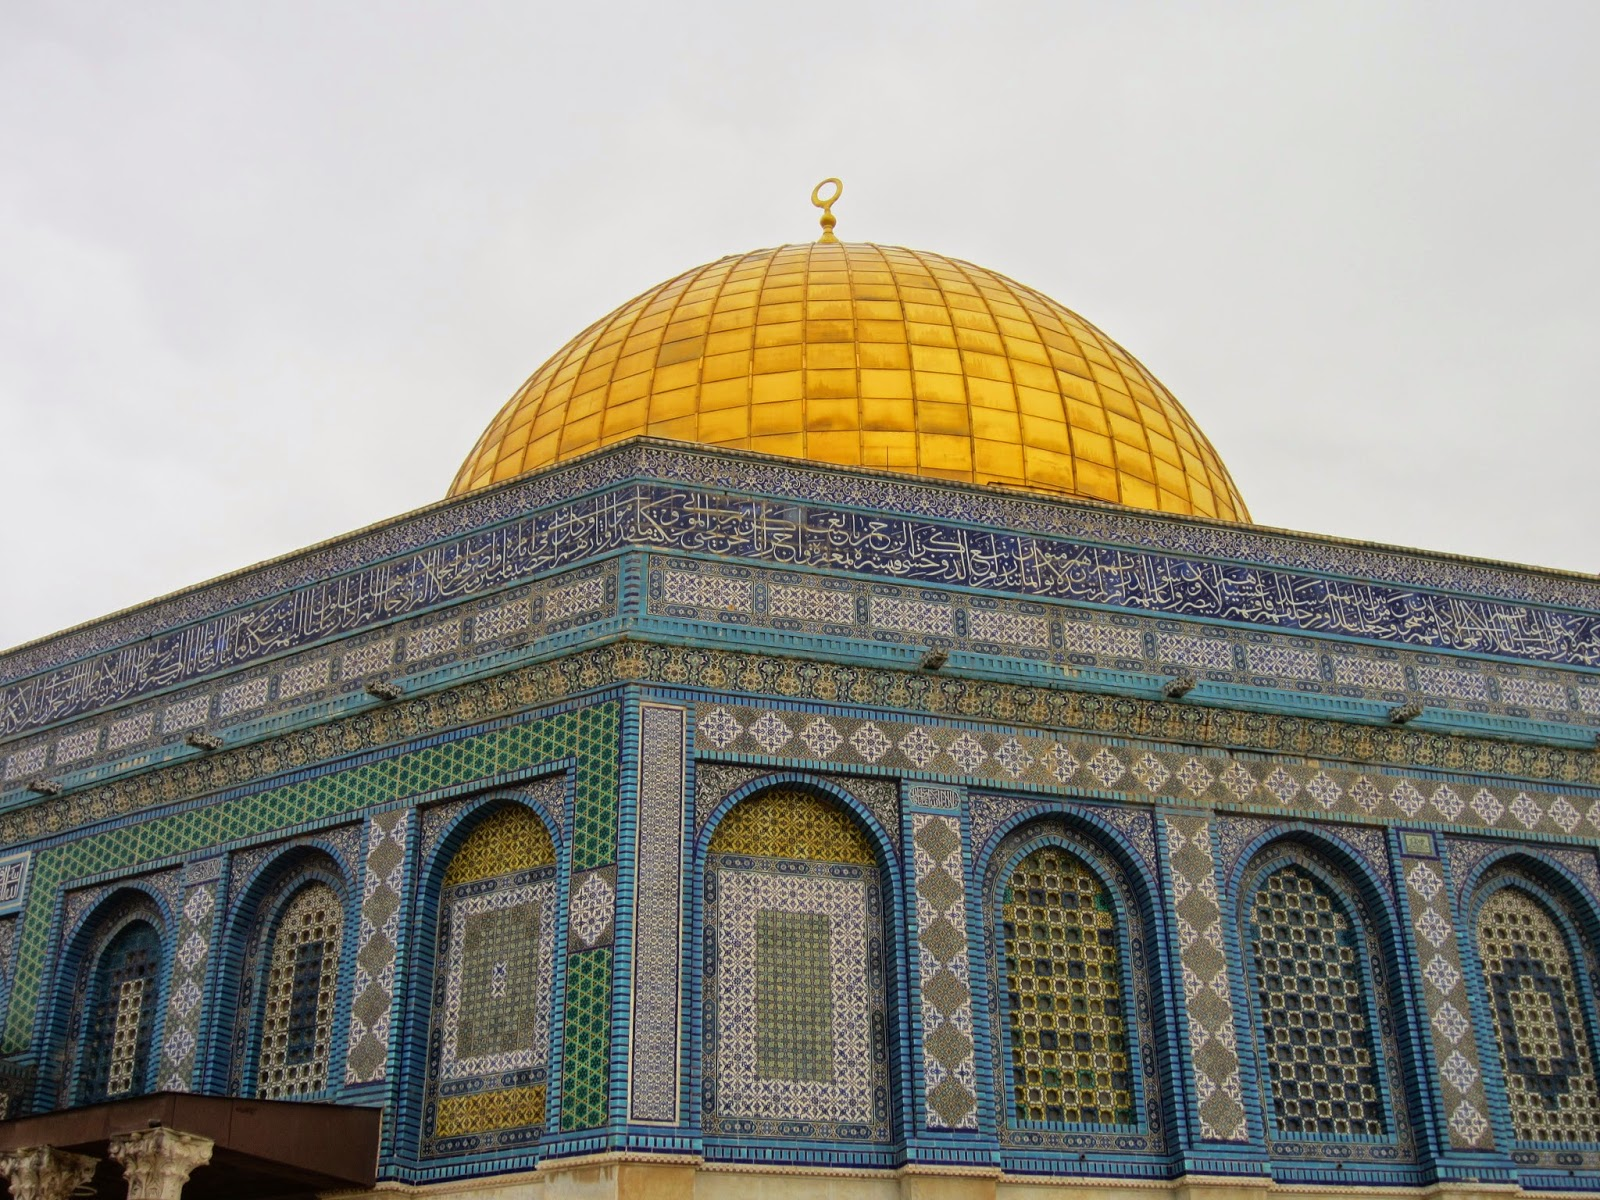 Mosaics 3, Dome of the Rock, Jerusalem